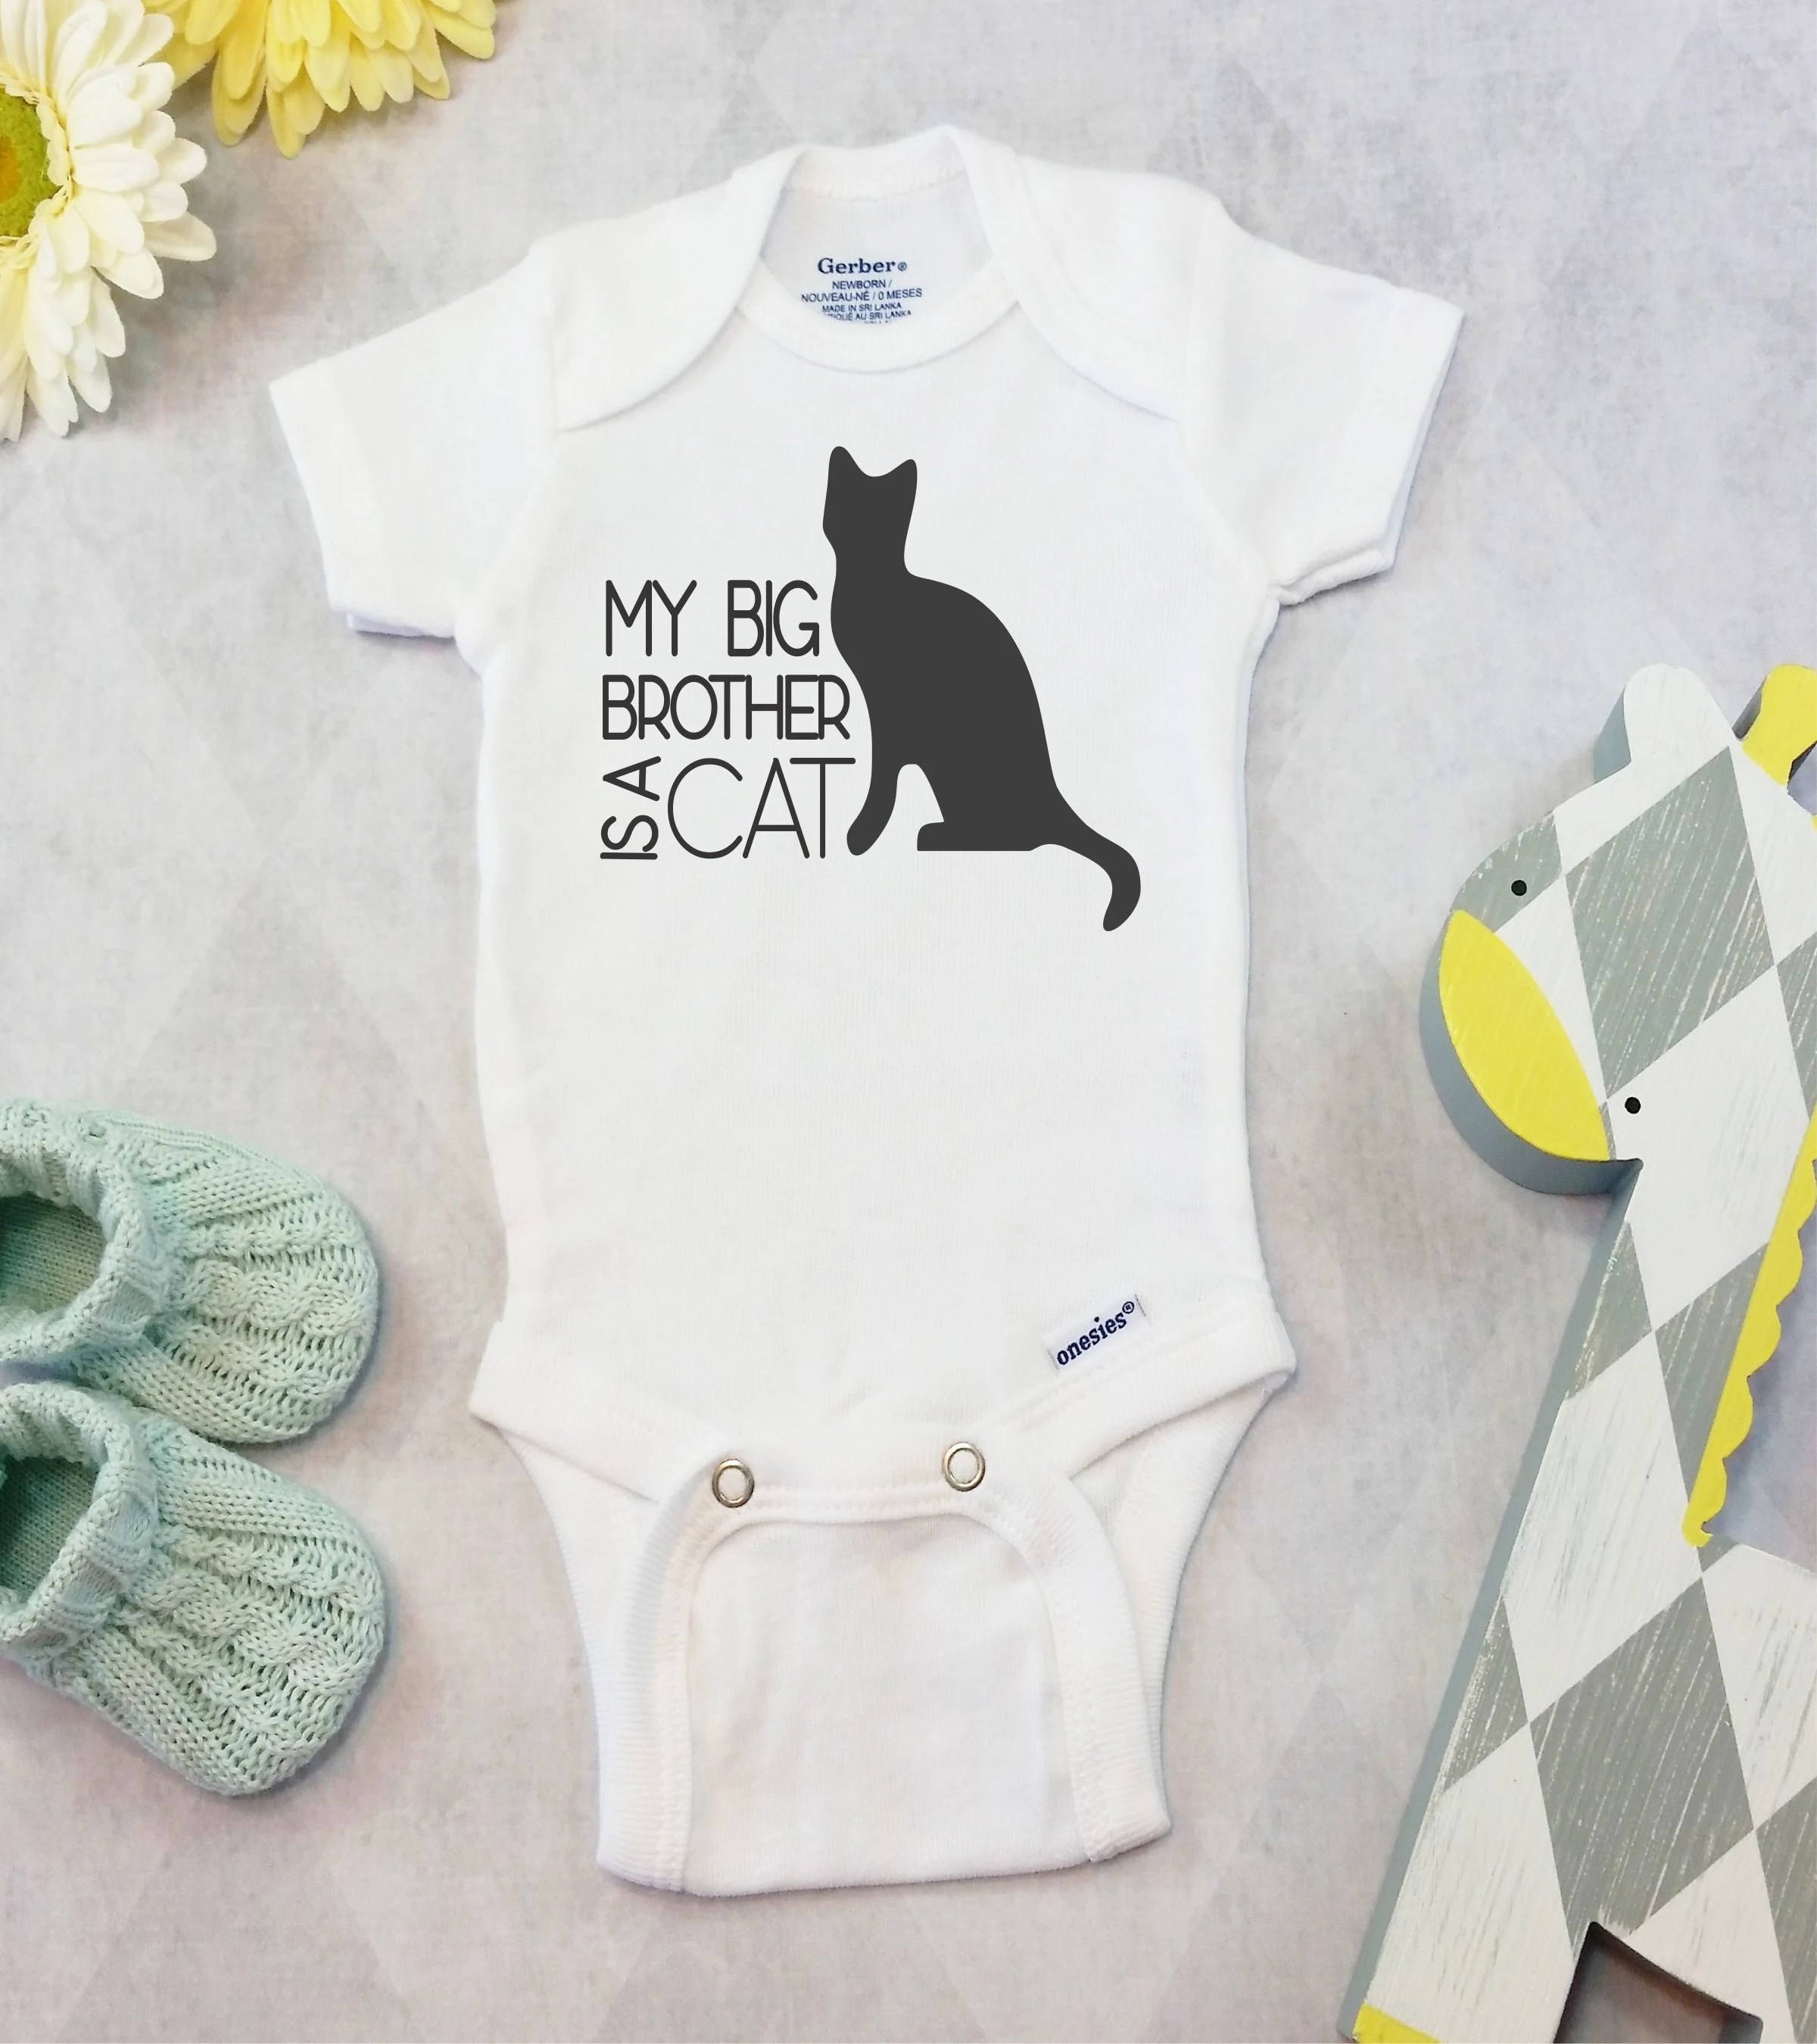 Cheap Baby Clothes Au My Big Brother Or Sister Is A Cat Onesies Brand Or Carter S Bodysuit Pet Pregnancy Announcement Funny Cat Baby Clothes Baby Boy Baby Girl